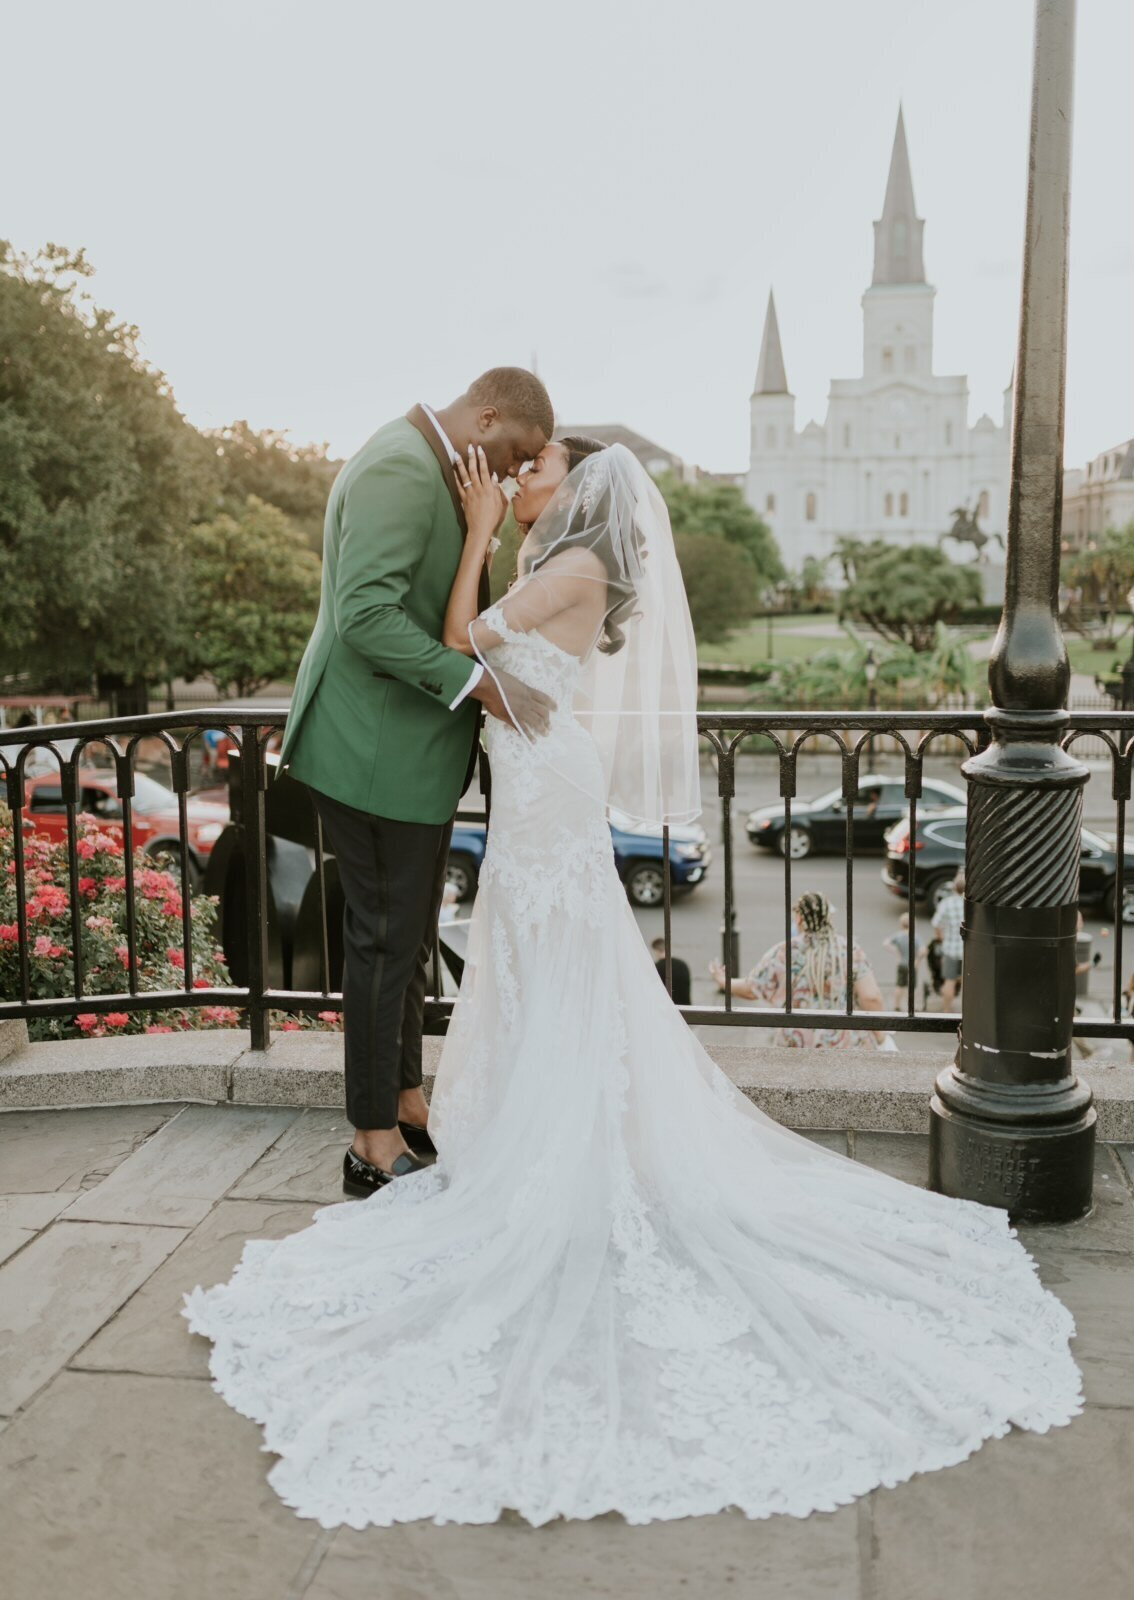 Lavishly Chic Designs Weddings Events Wedding Planning Coordination Designs New Orleans Louisiana Southern Destination South Delia King25